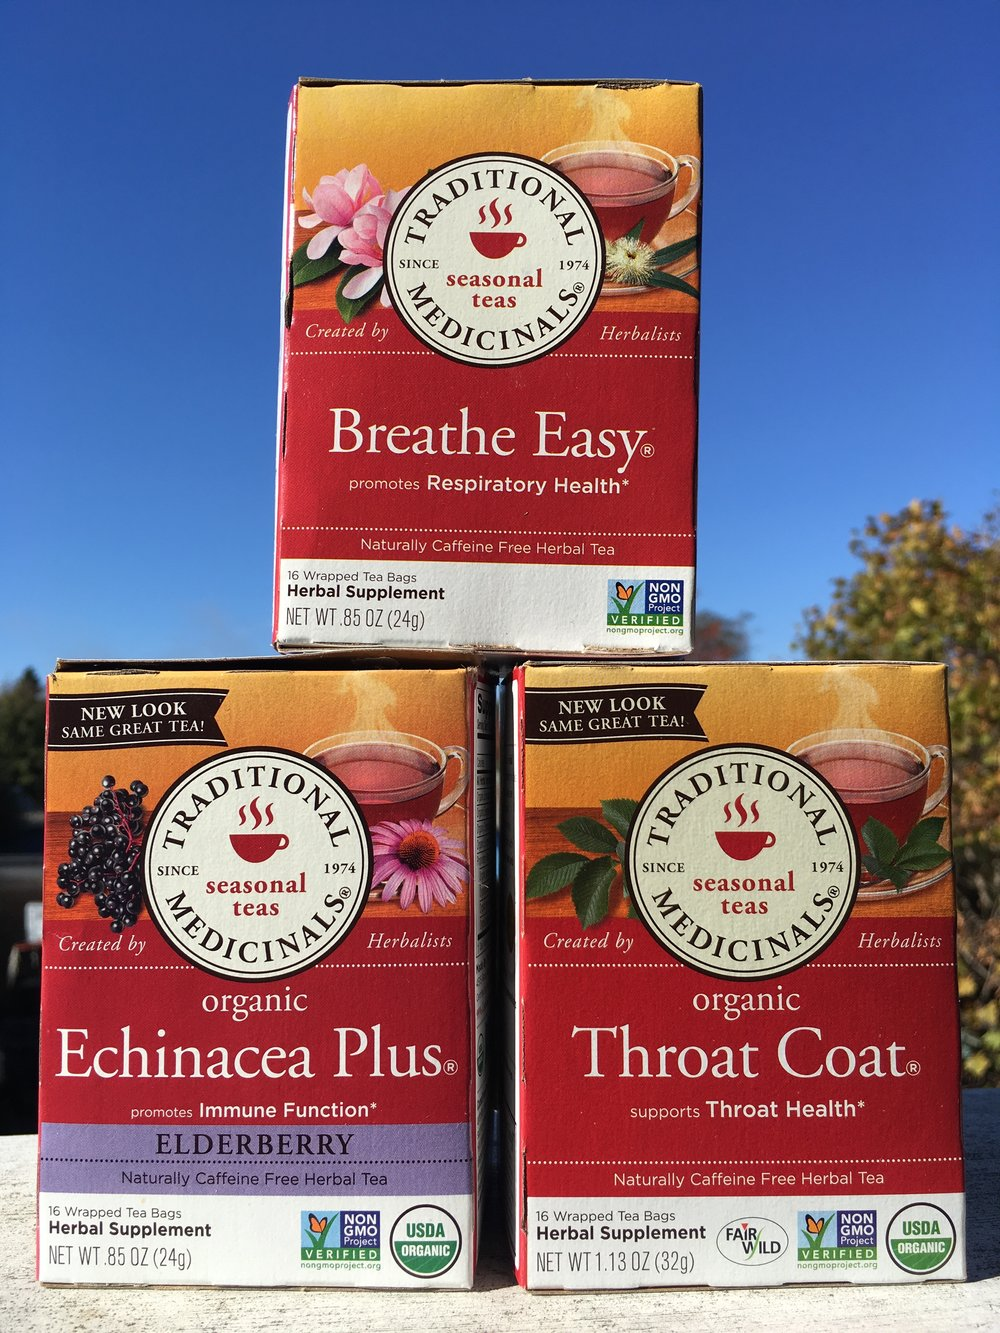 Echinacea-Breathe-Easy-Throat-Coat-Traditional-Medicinals-tea.jpg